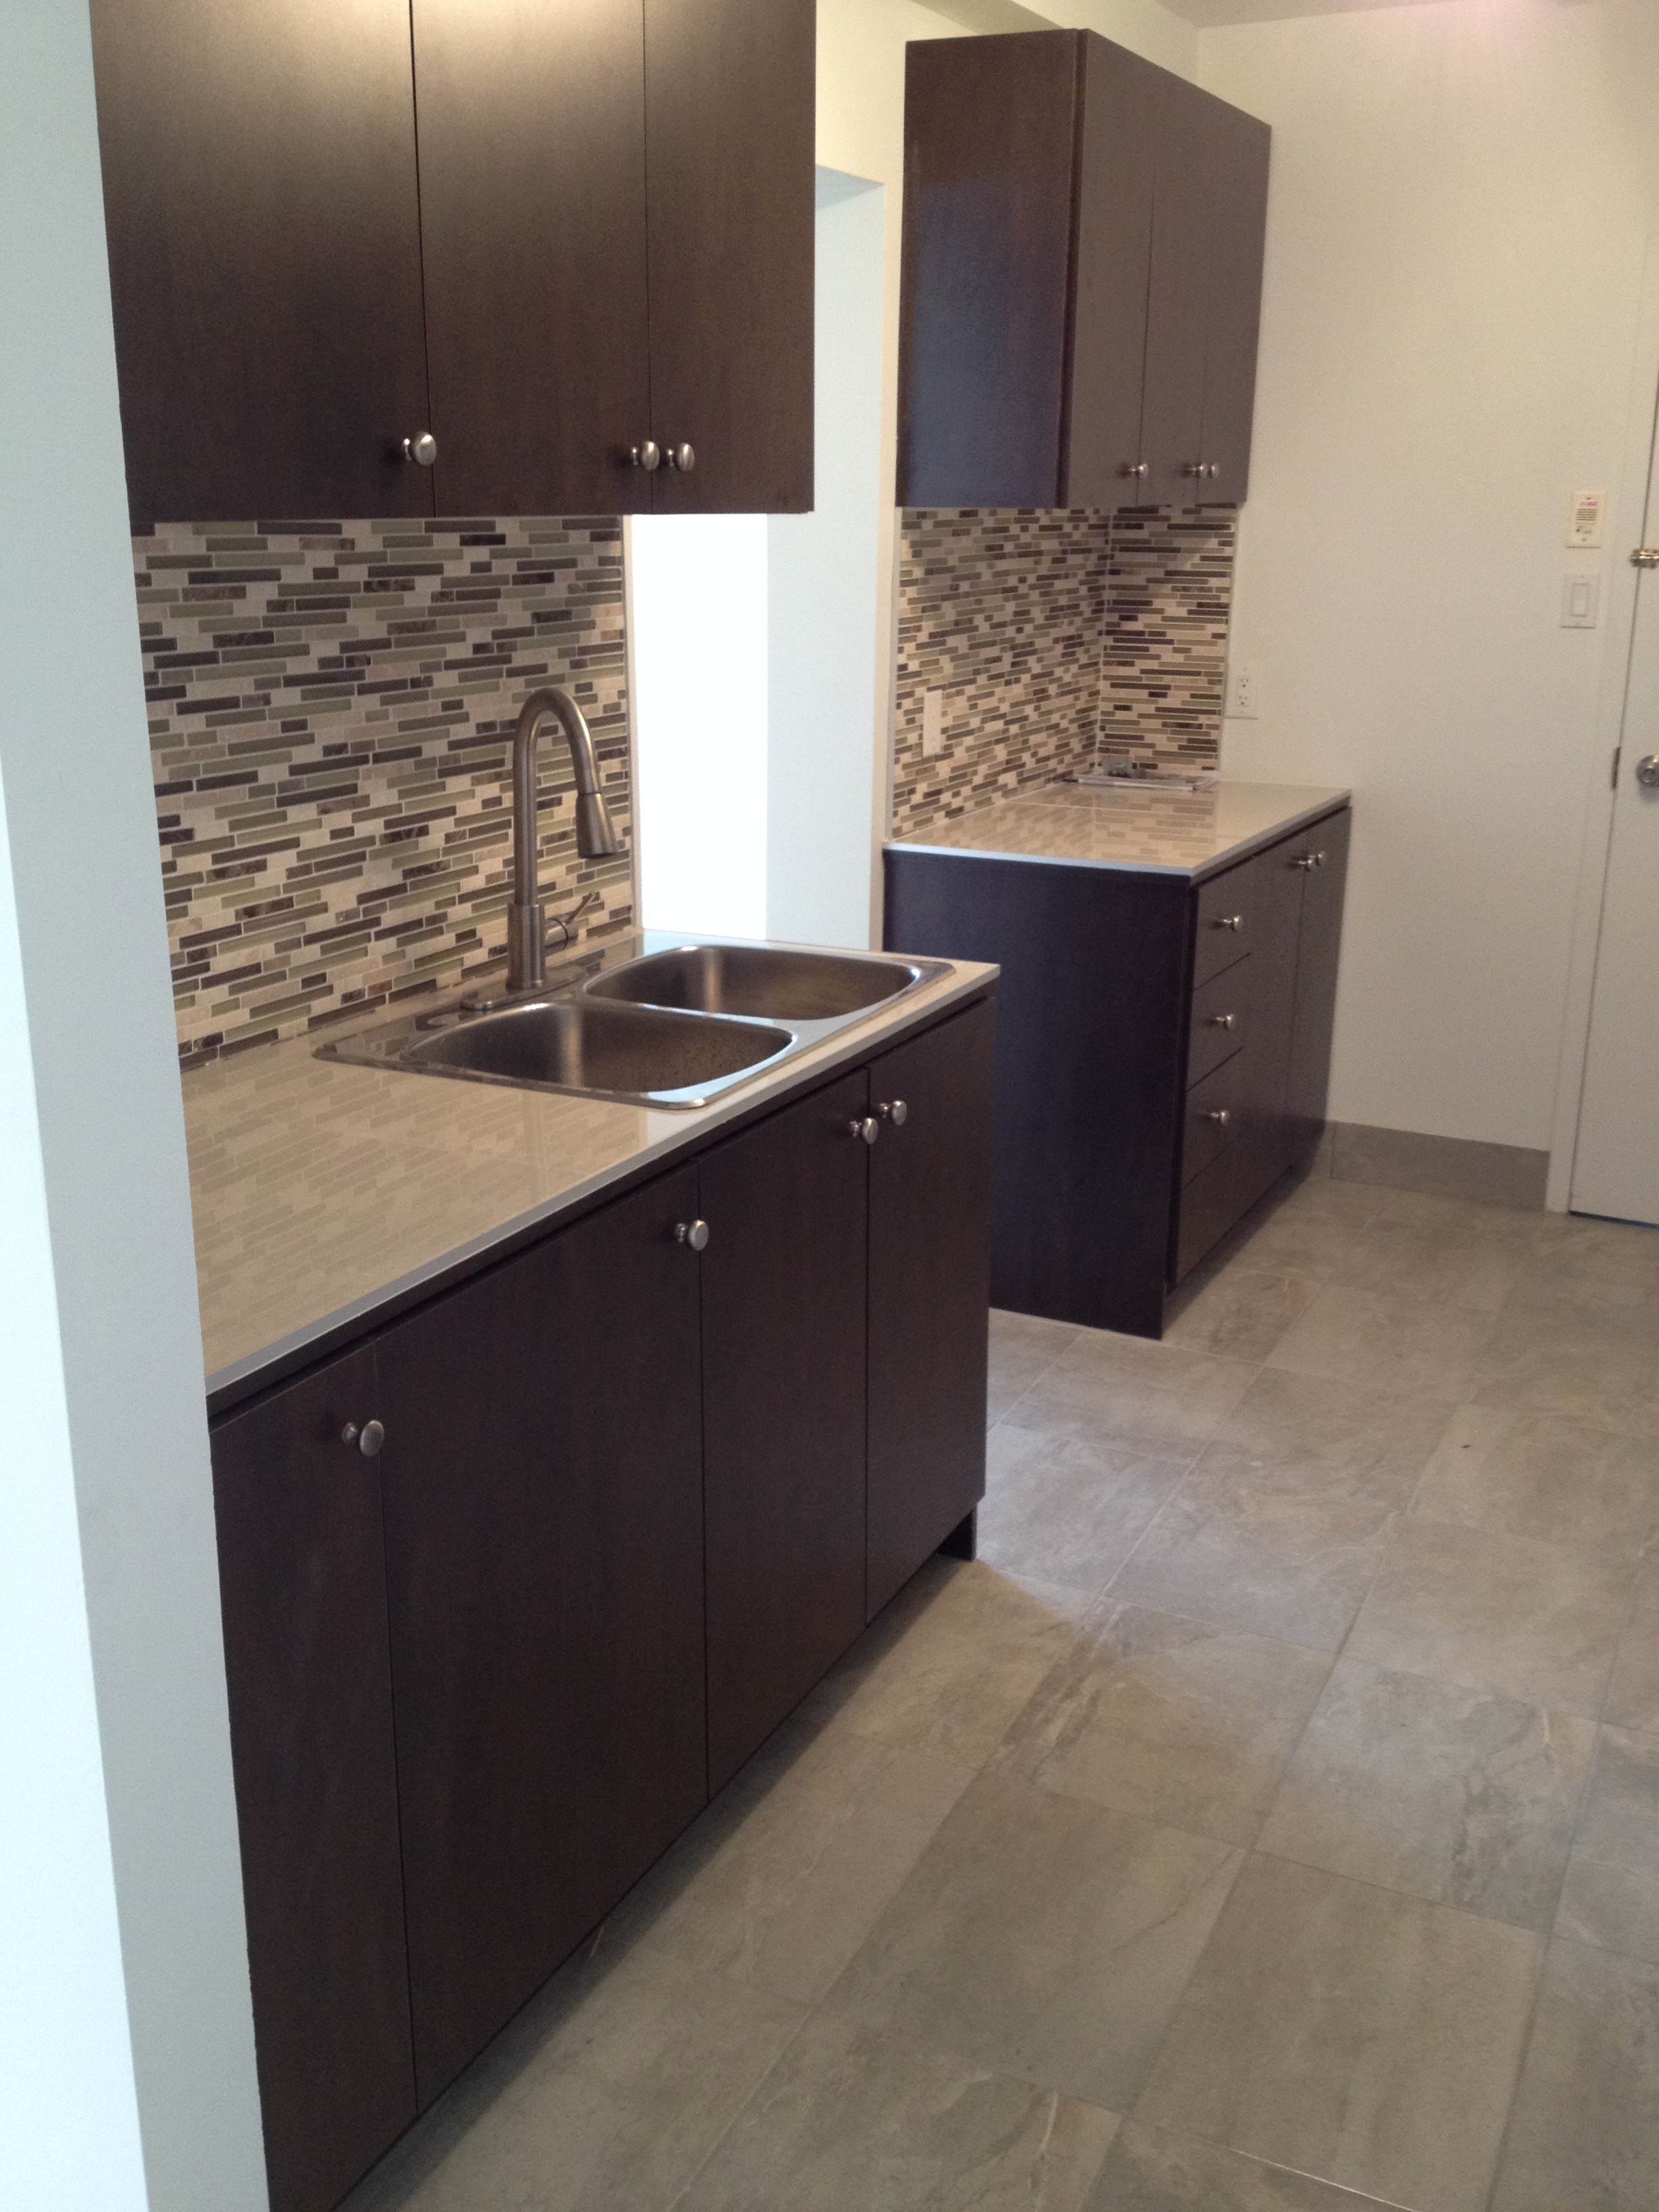 1 bedroom Apartments for rent in Cote-des-Neiges at 4201 Decarie - Photo 05 - RentQuebecApartments – L146808